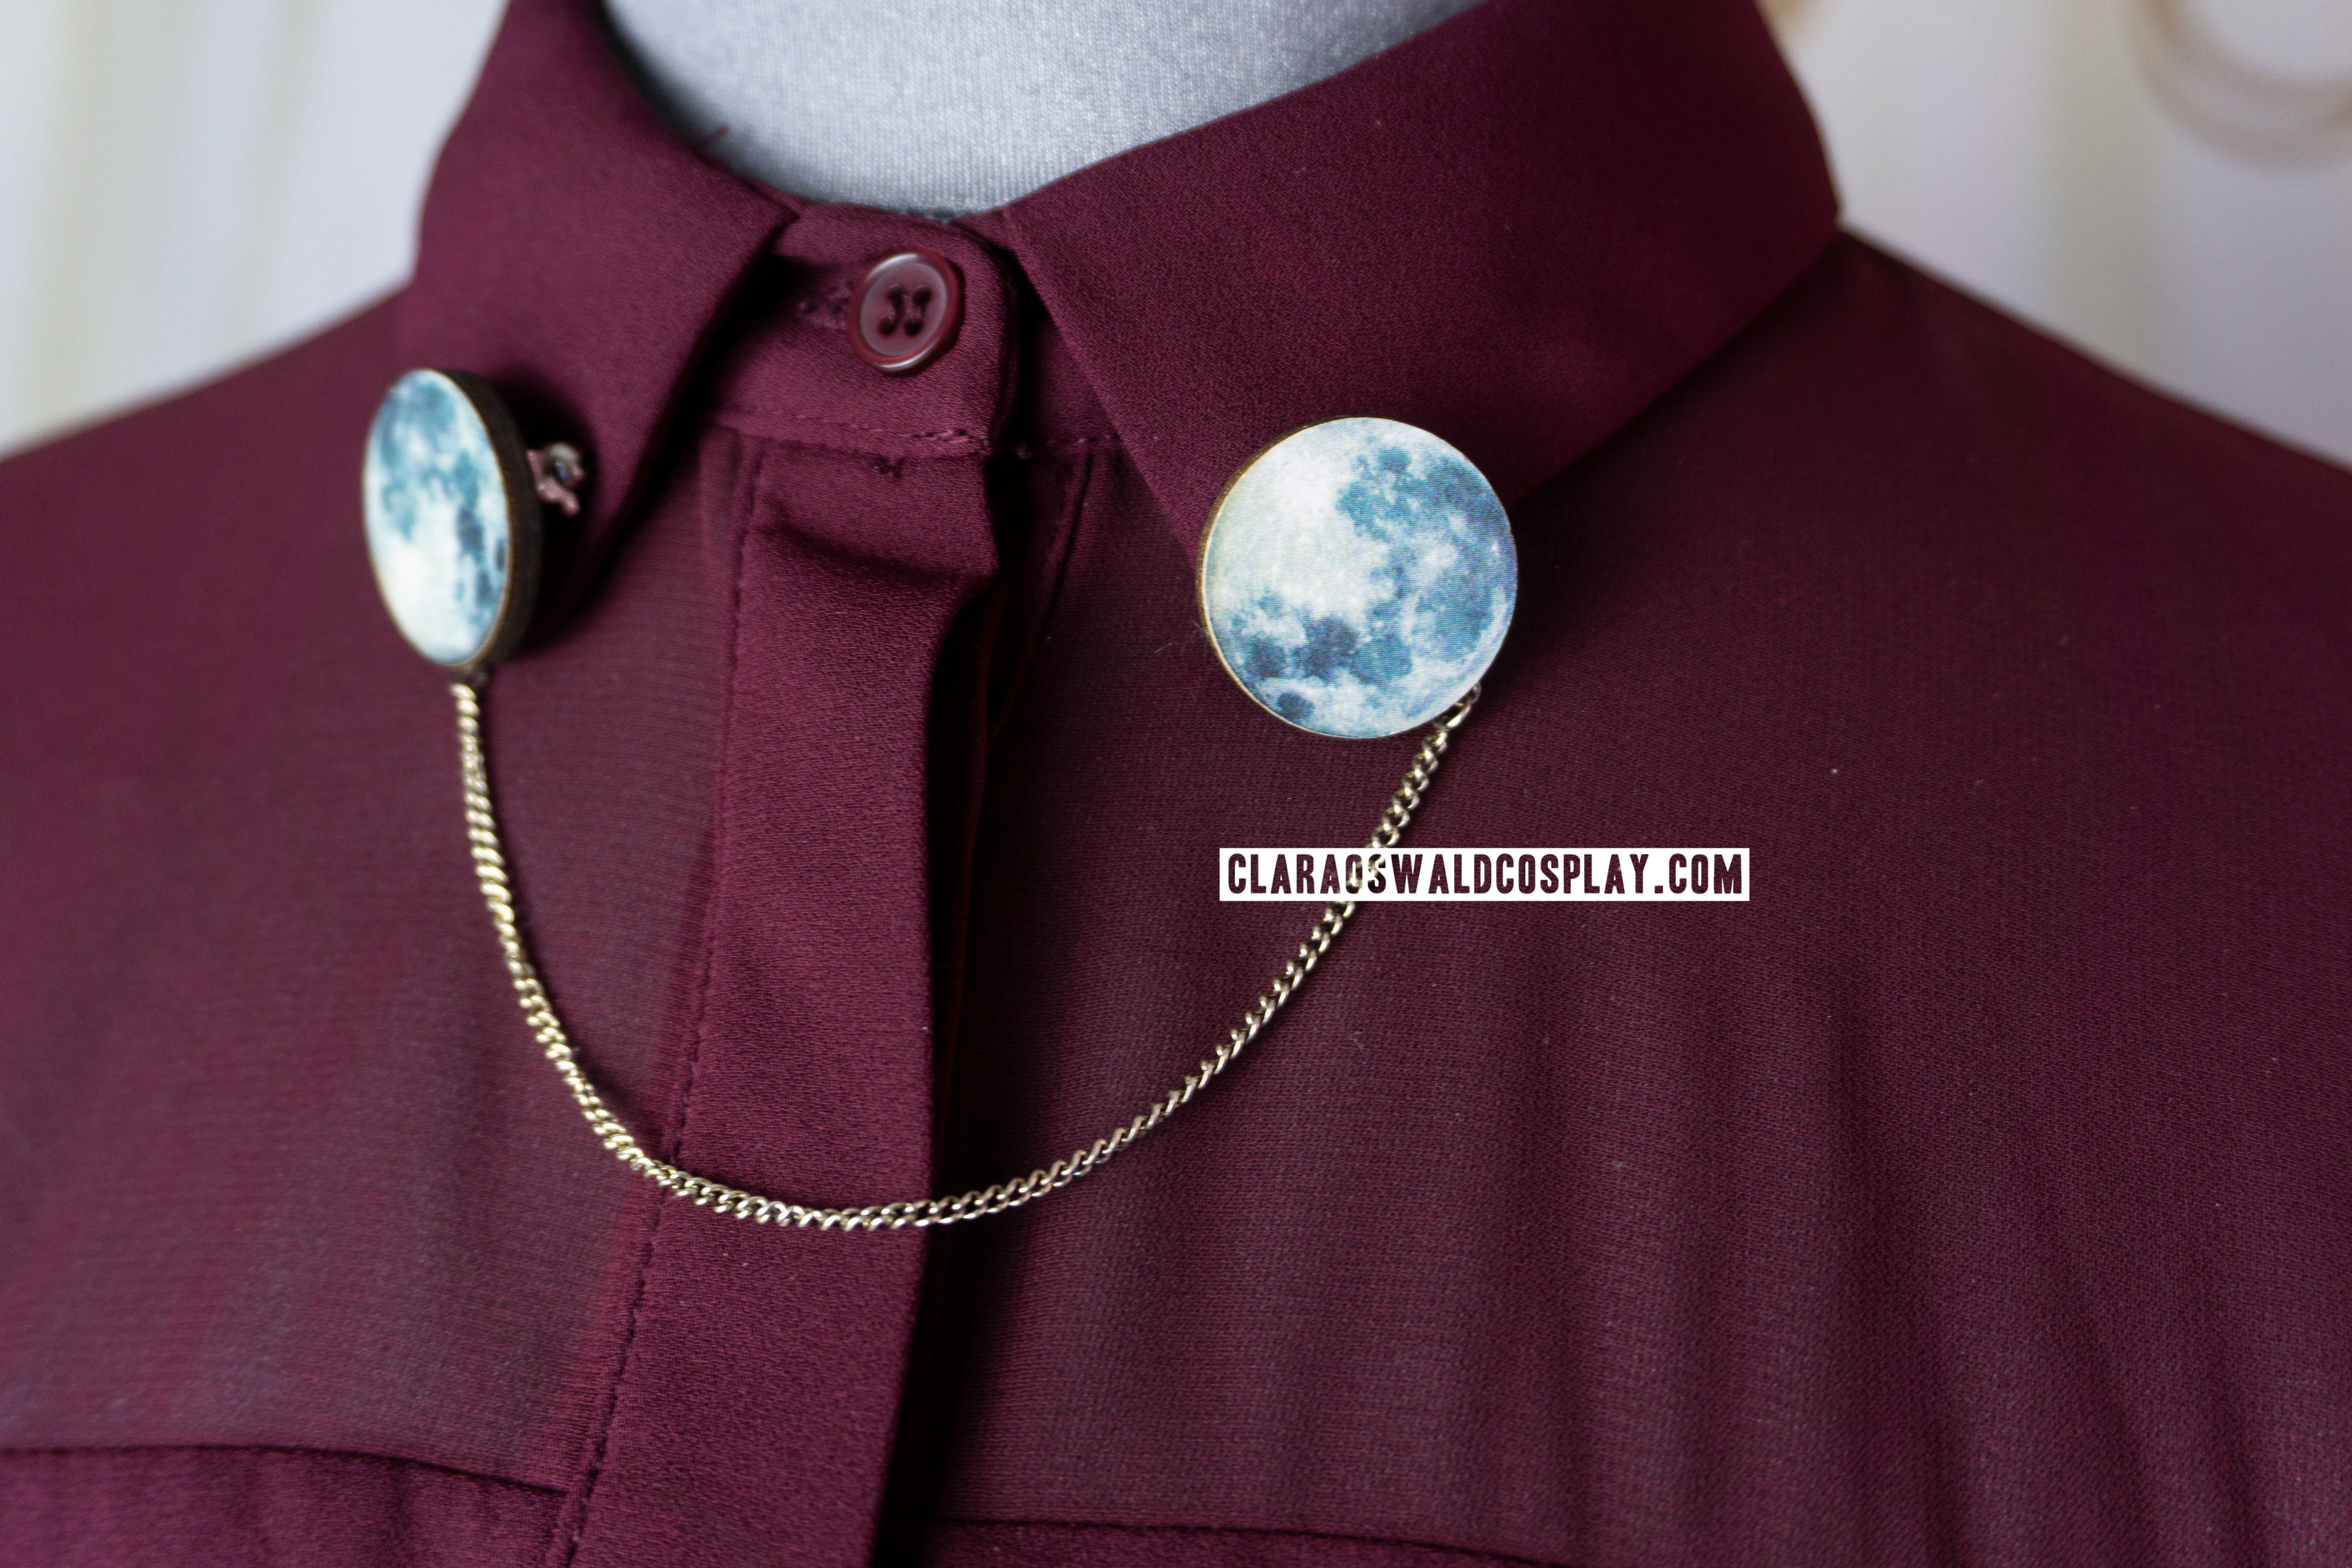 Ladybird Likes Moon Wooden Collar Clips as seen on Clara Oswald in The Caretaker